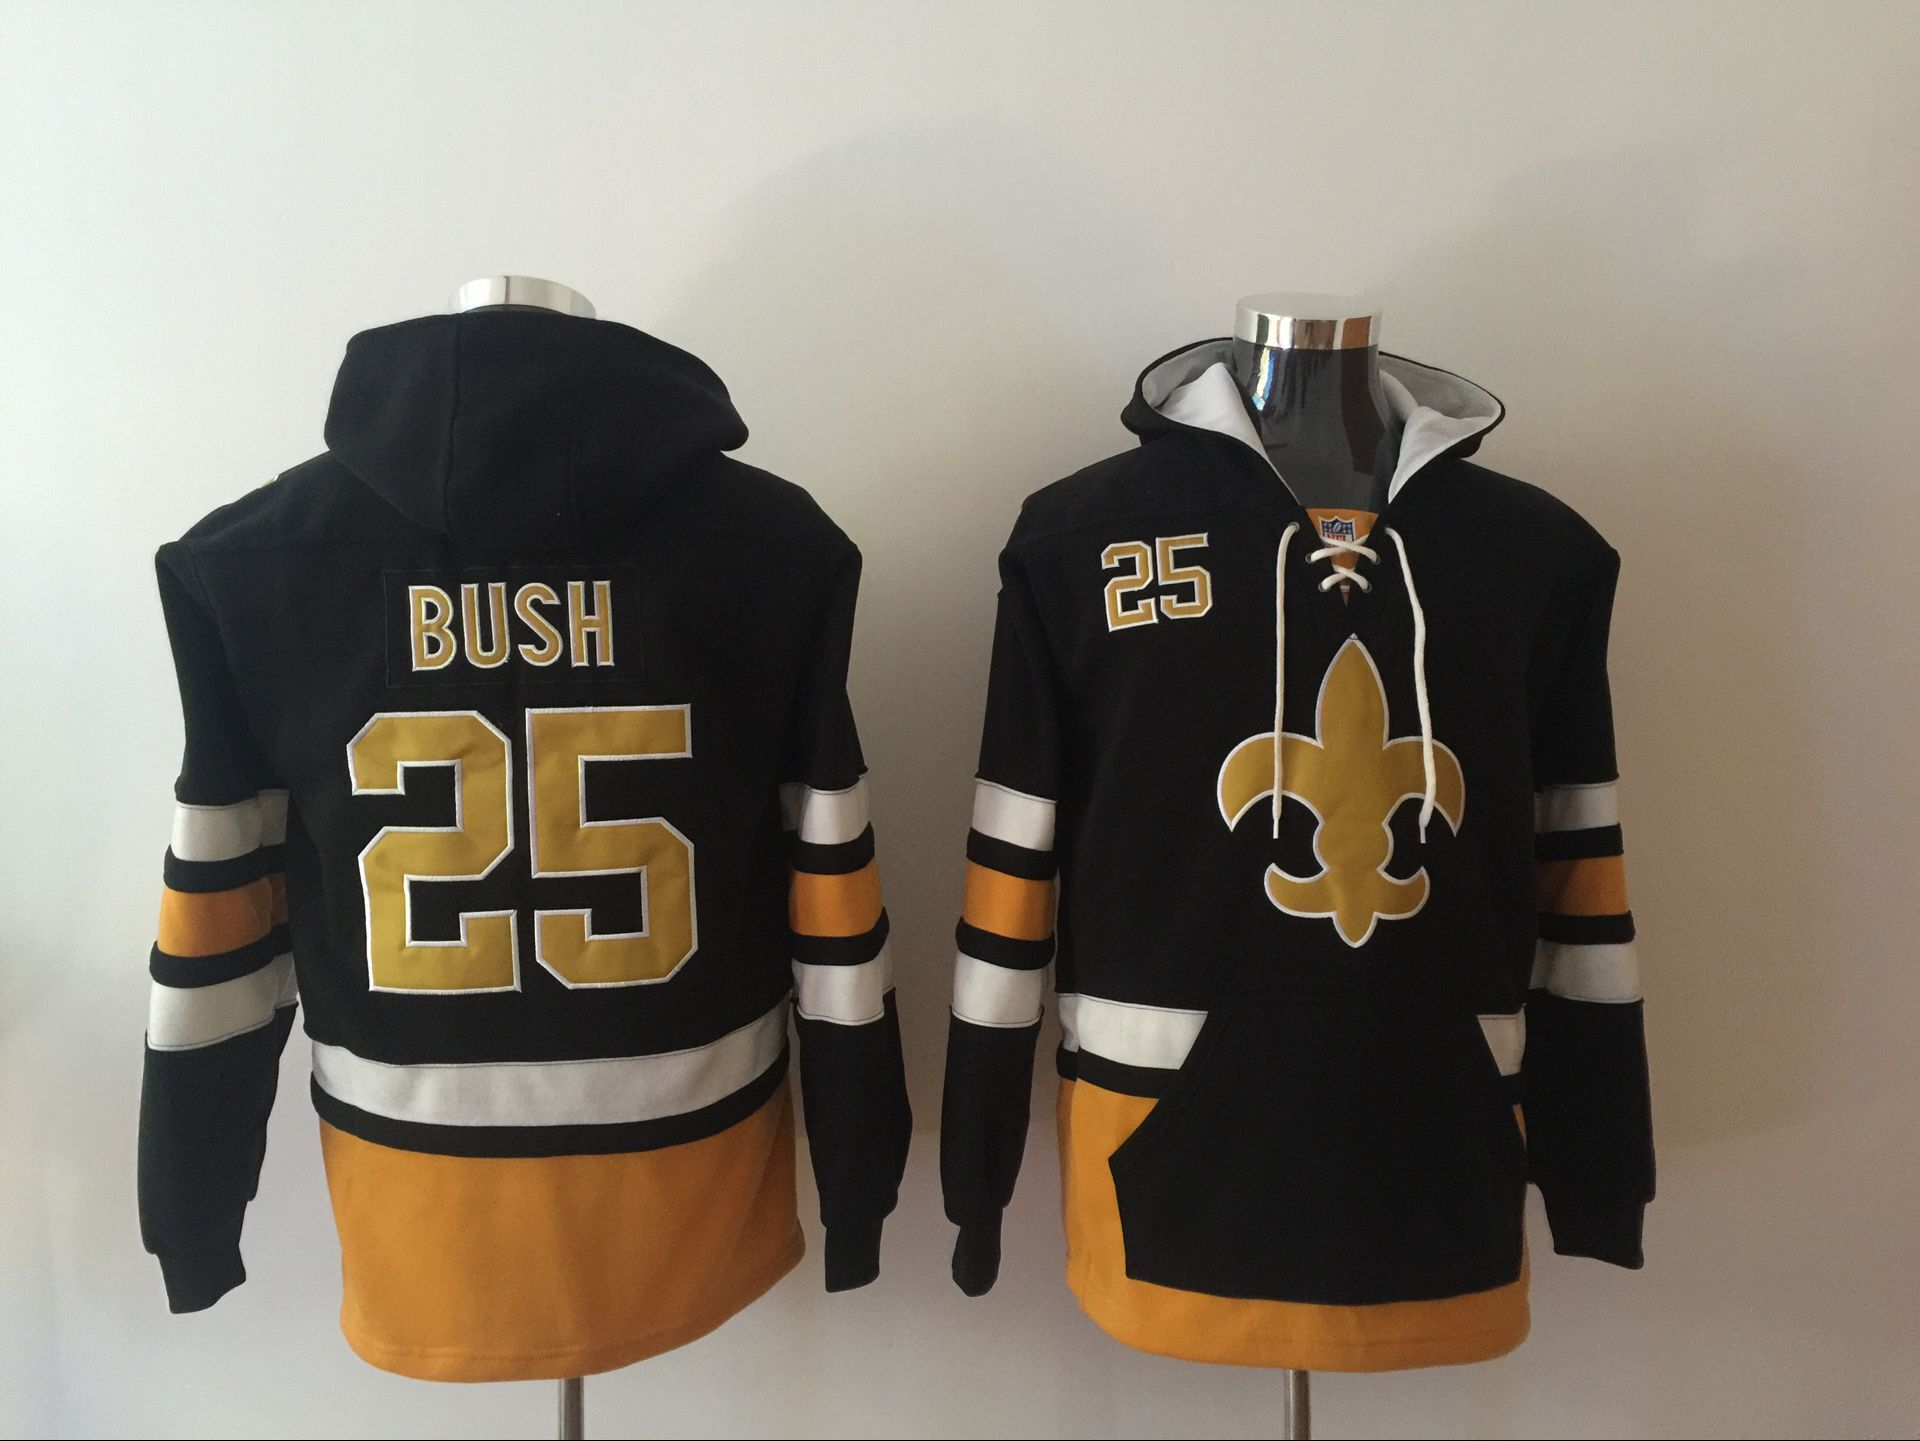 Men NFL Nike New Orleans Saints 25 Bush black Sweatshirts